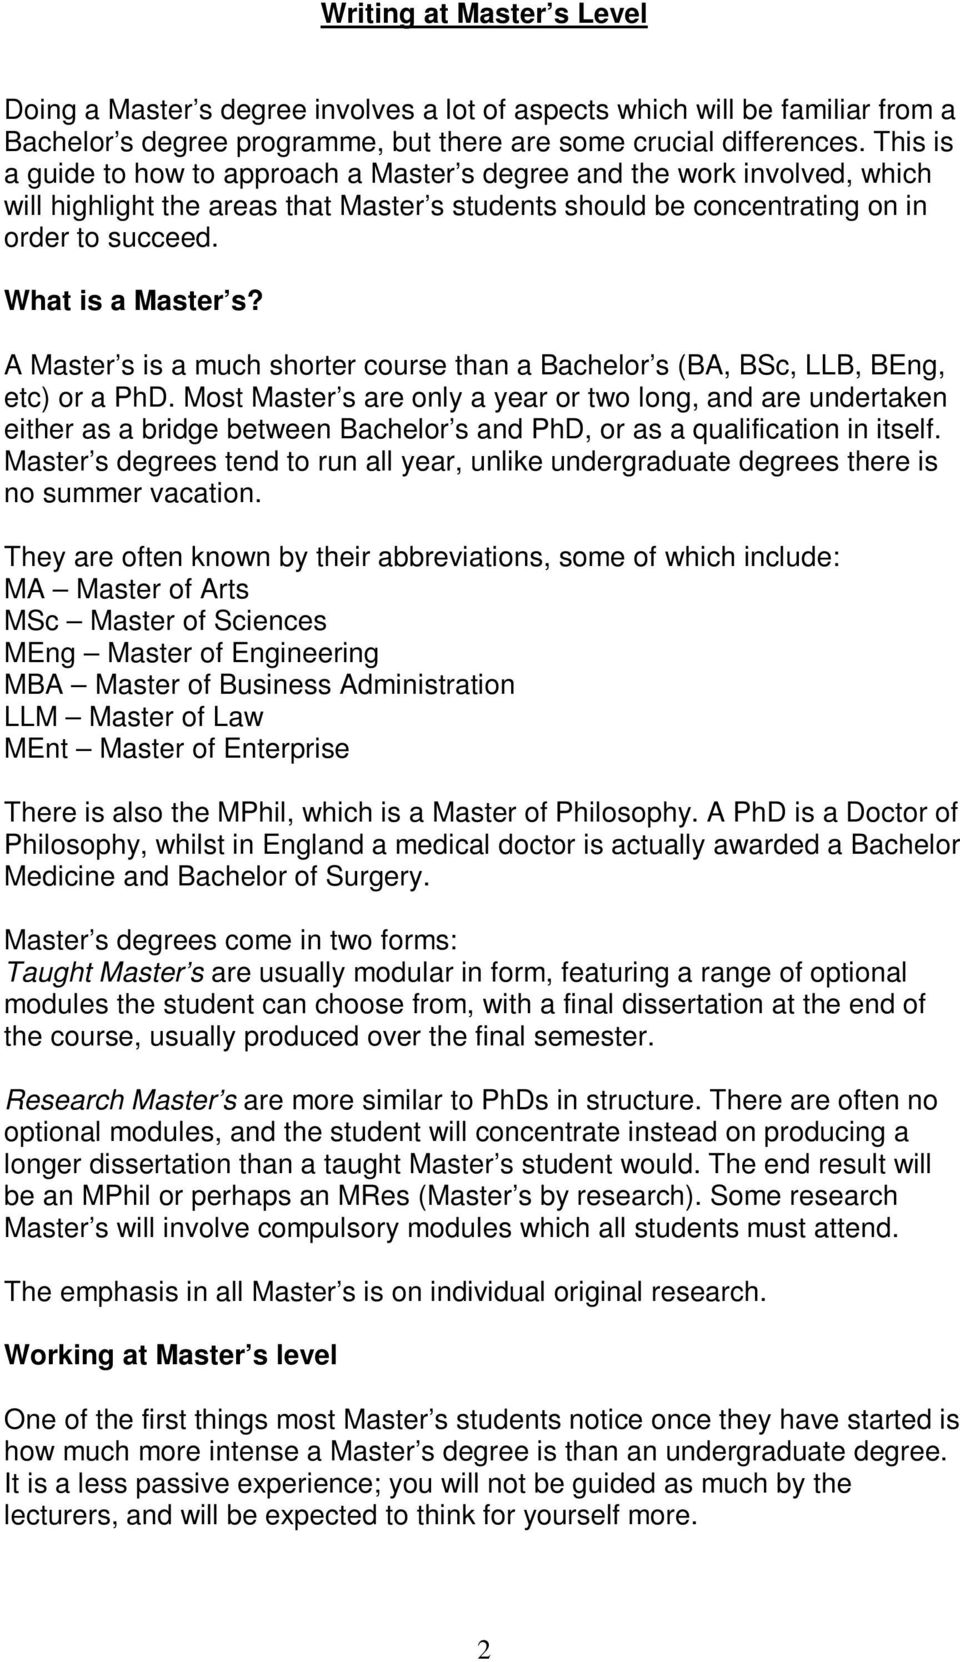 A Master s is a much shorter course than a Bachelor s (BA, BSc, LLB, BEng, etc) or a PhD.